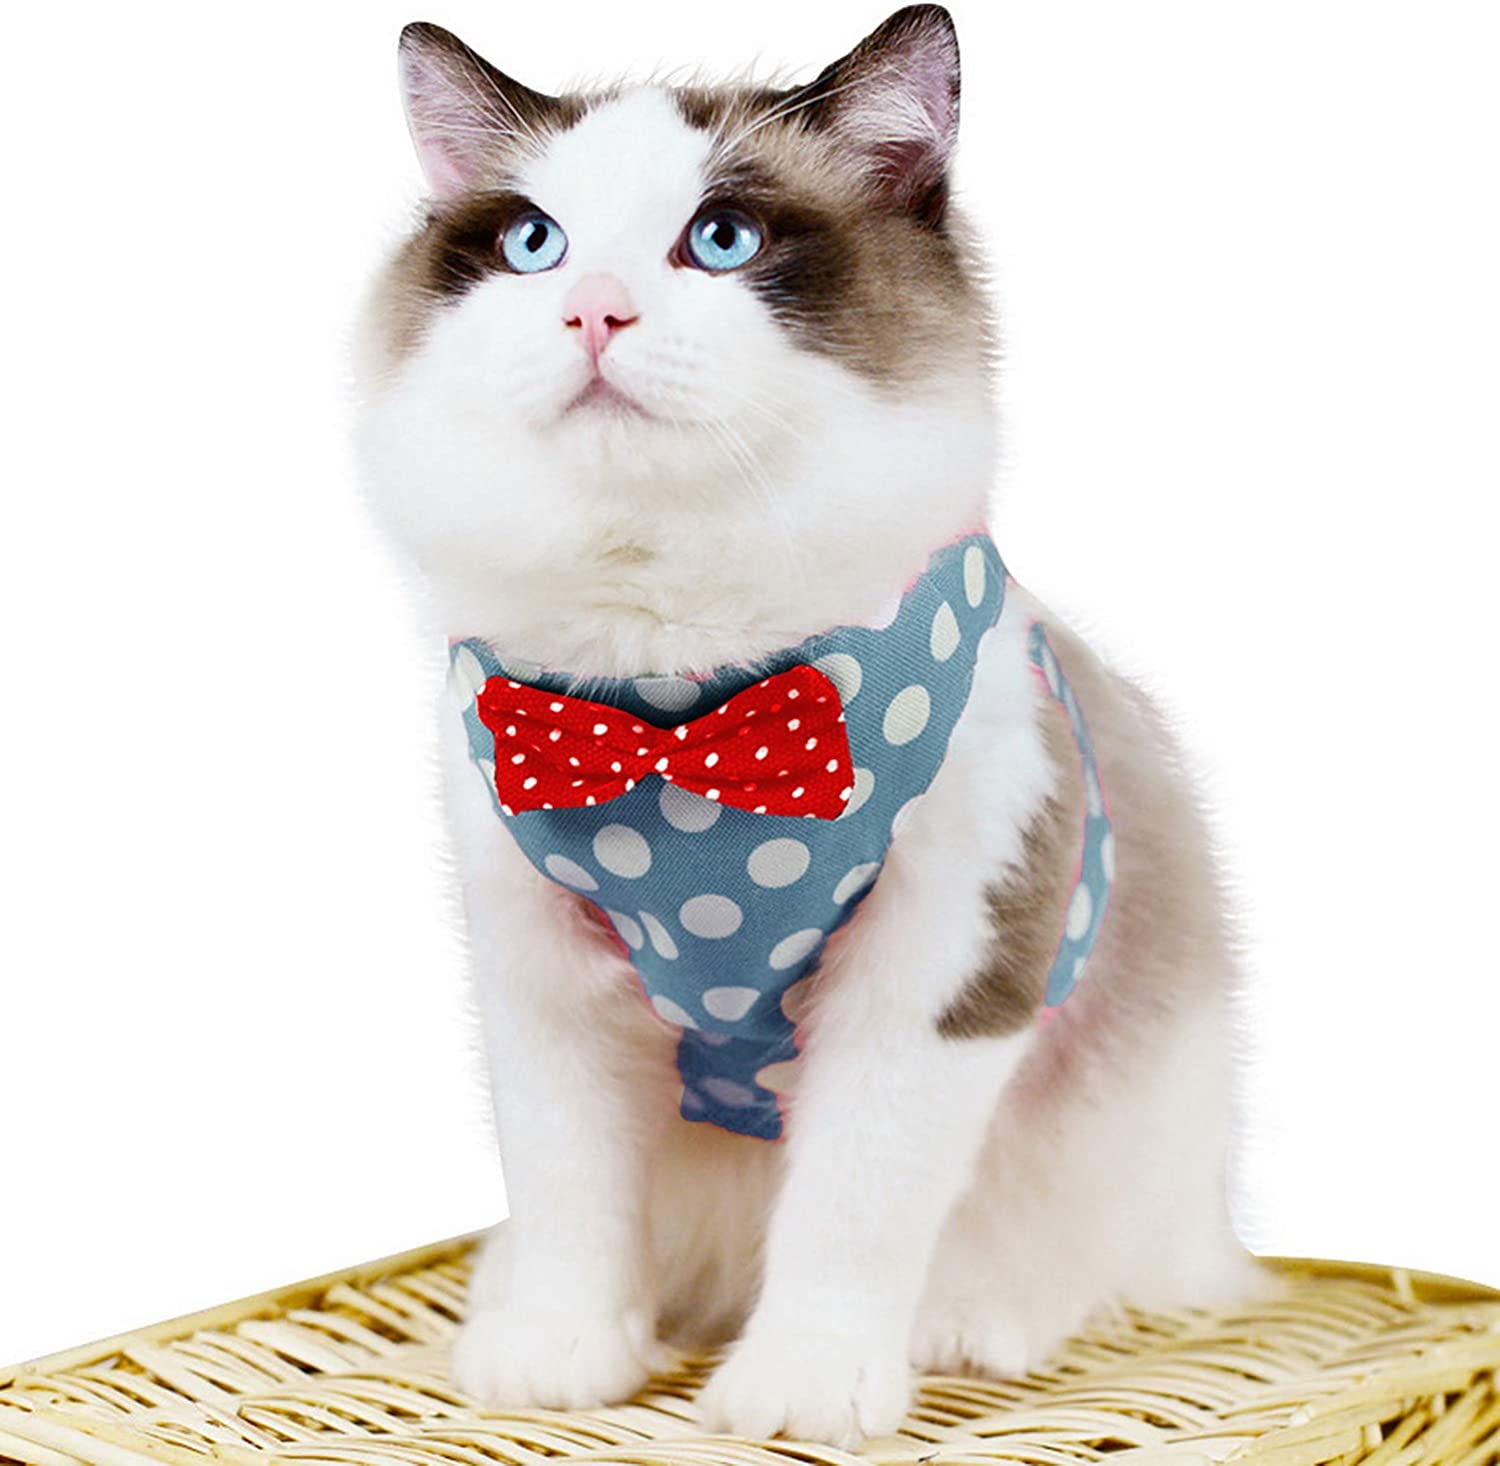 Mesh Padded Pet Cat Harness Escape Proof for Walking Red XS Zunea No Pull Dog Harness and Leash Set for Small Dogs Adjustable Striped Formal Tuxedo Vest Harnesses with Bow Tie for Puppy Girl Boy